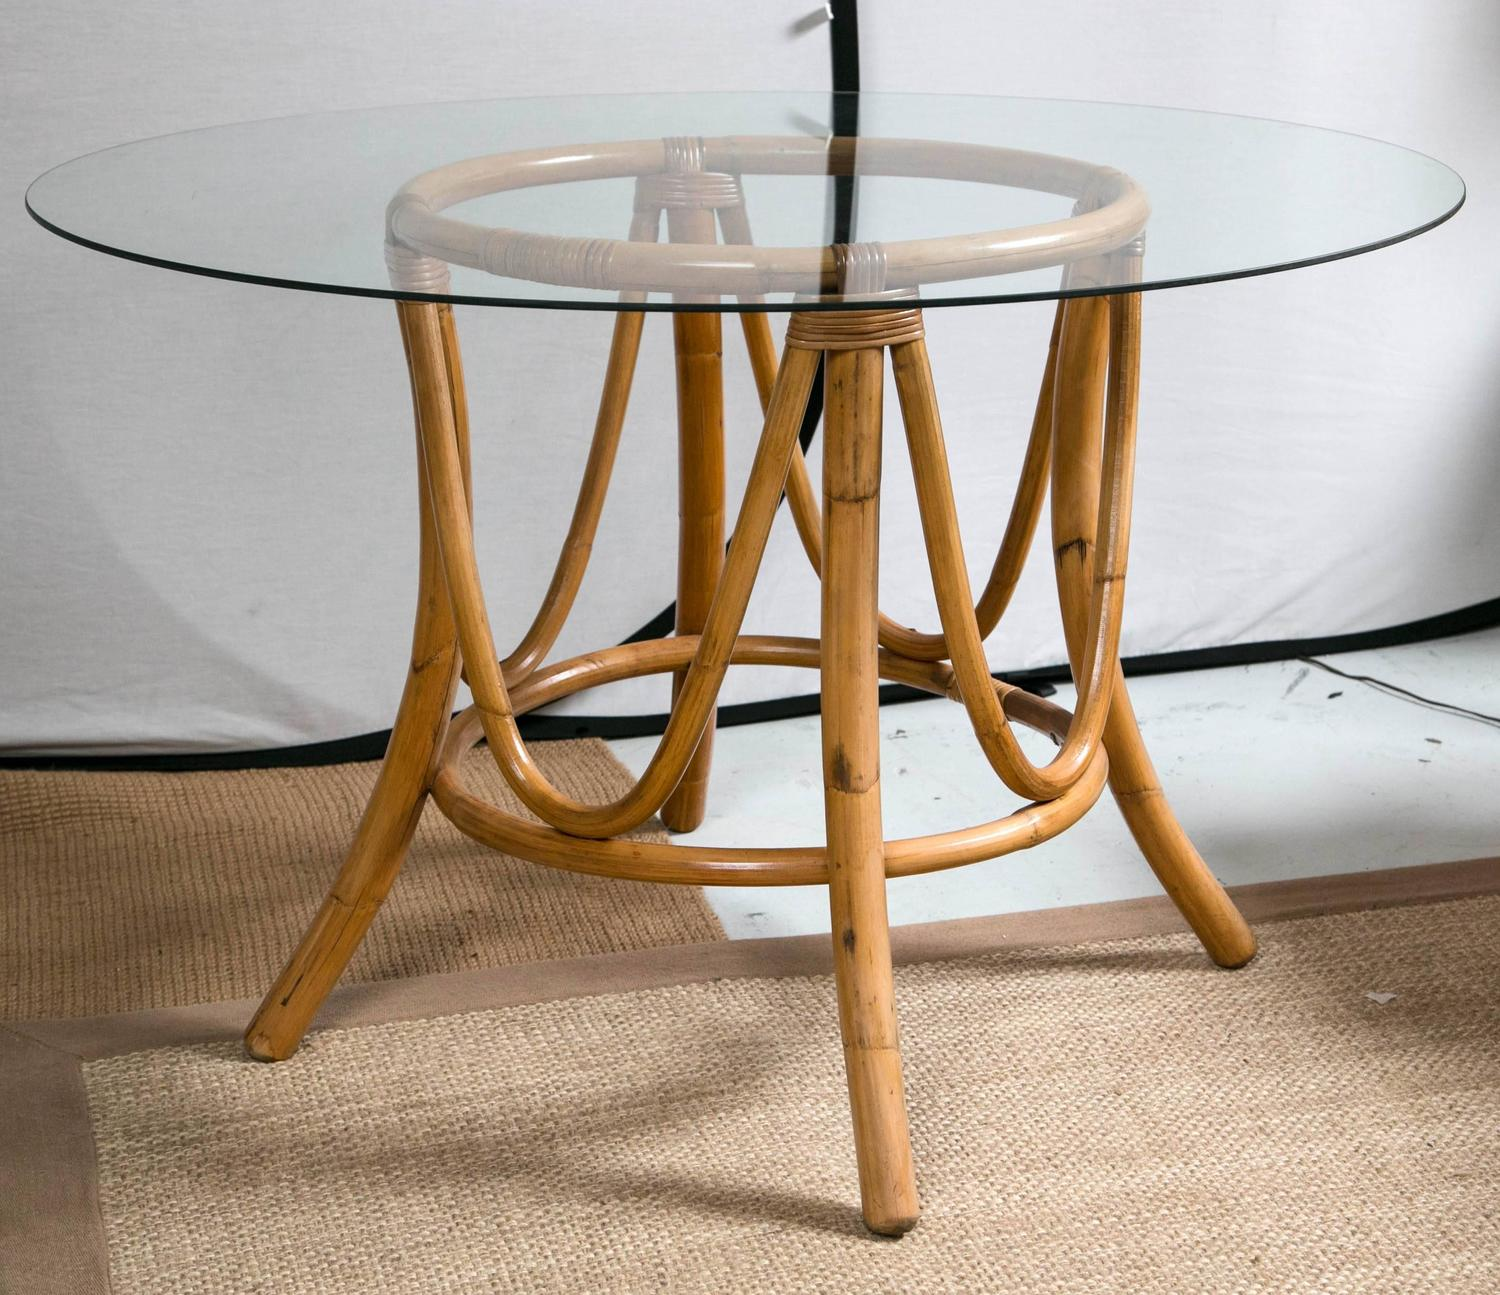 Vintage Bamboo Rattan Round Dining Table And Chairs At